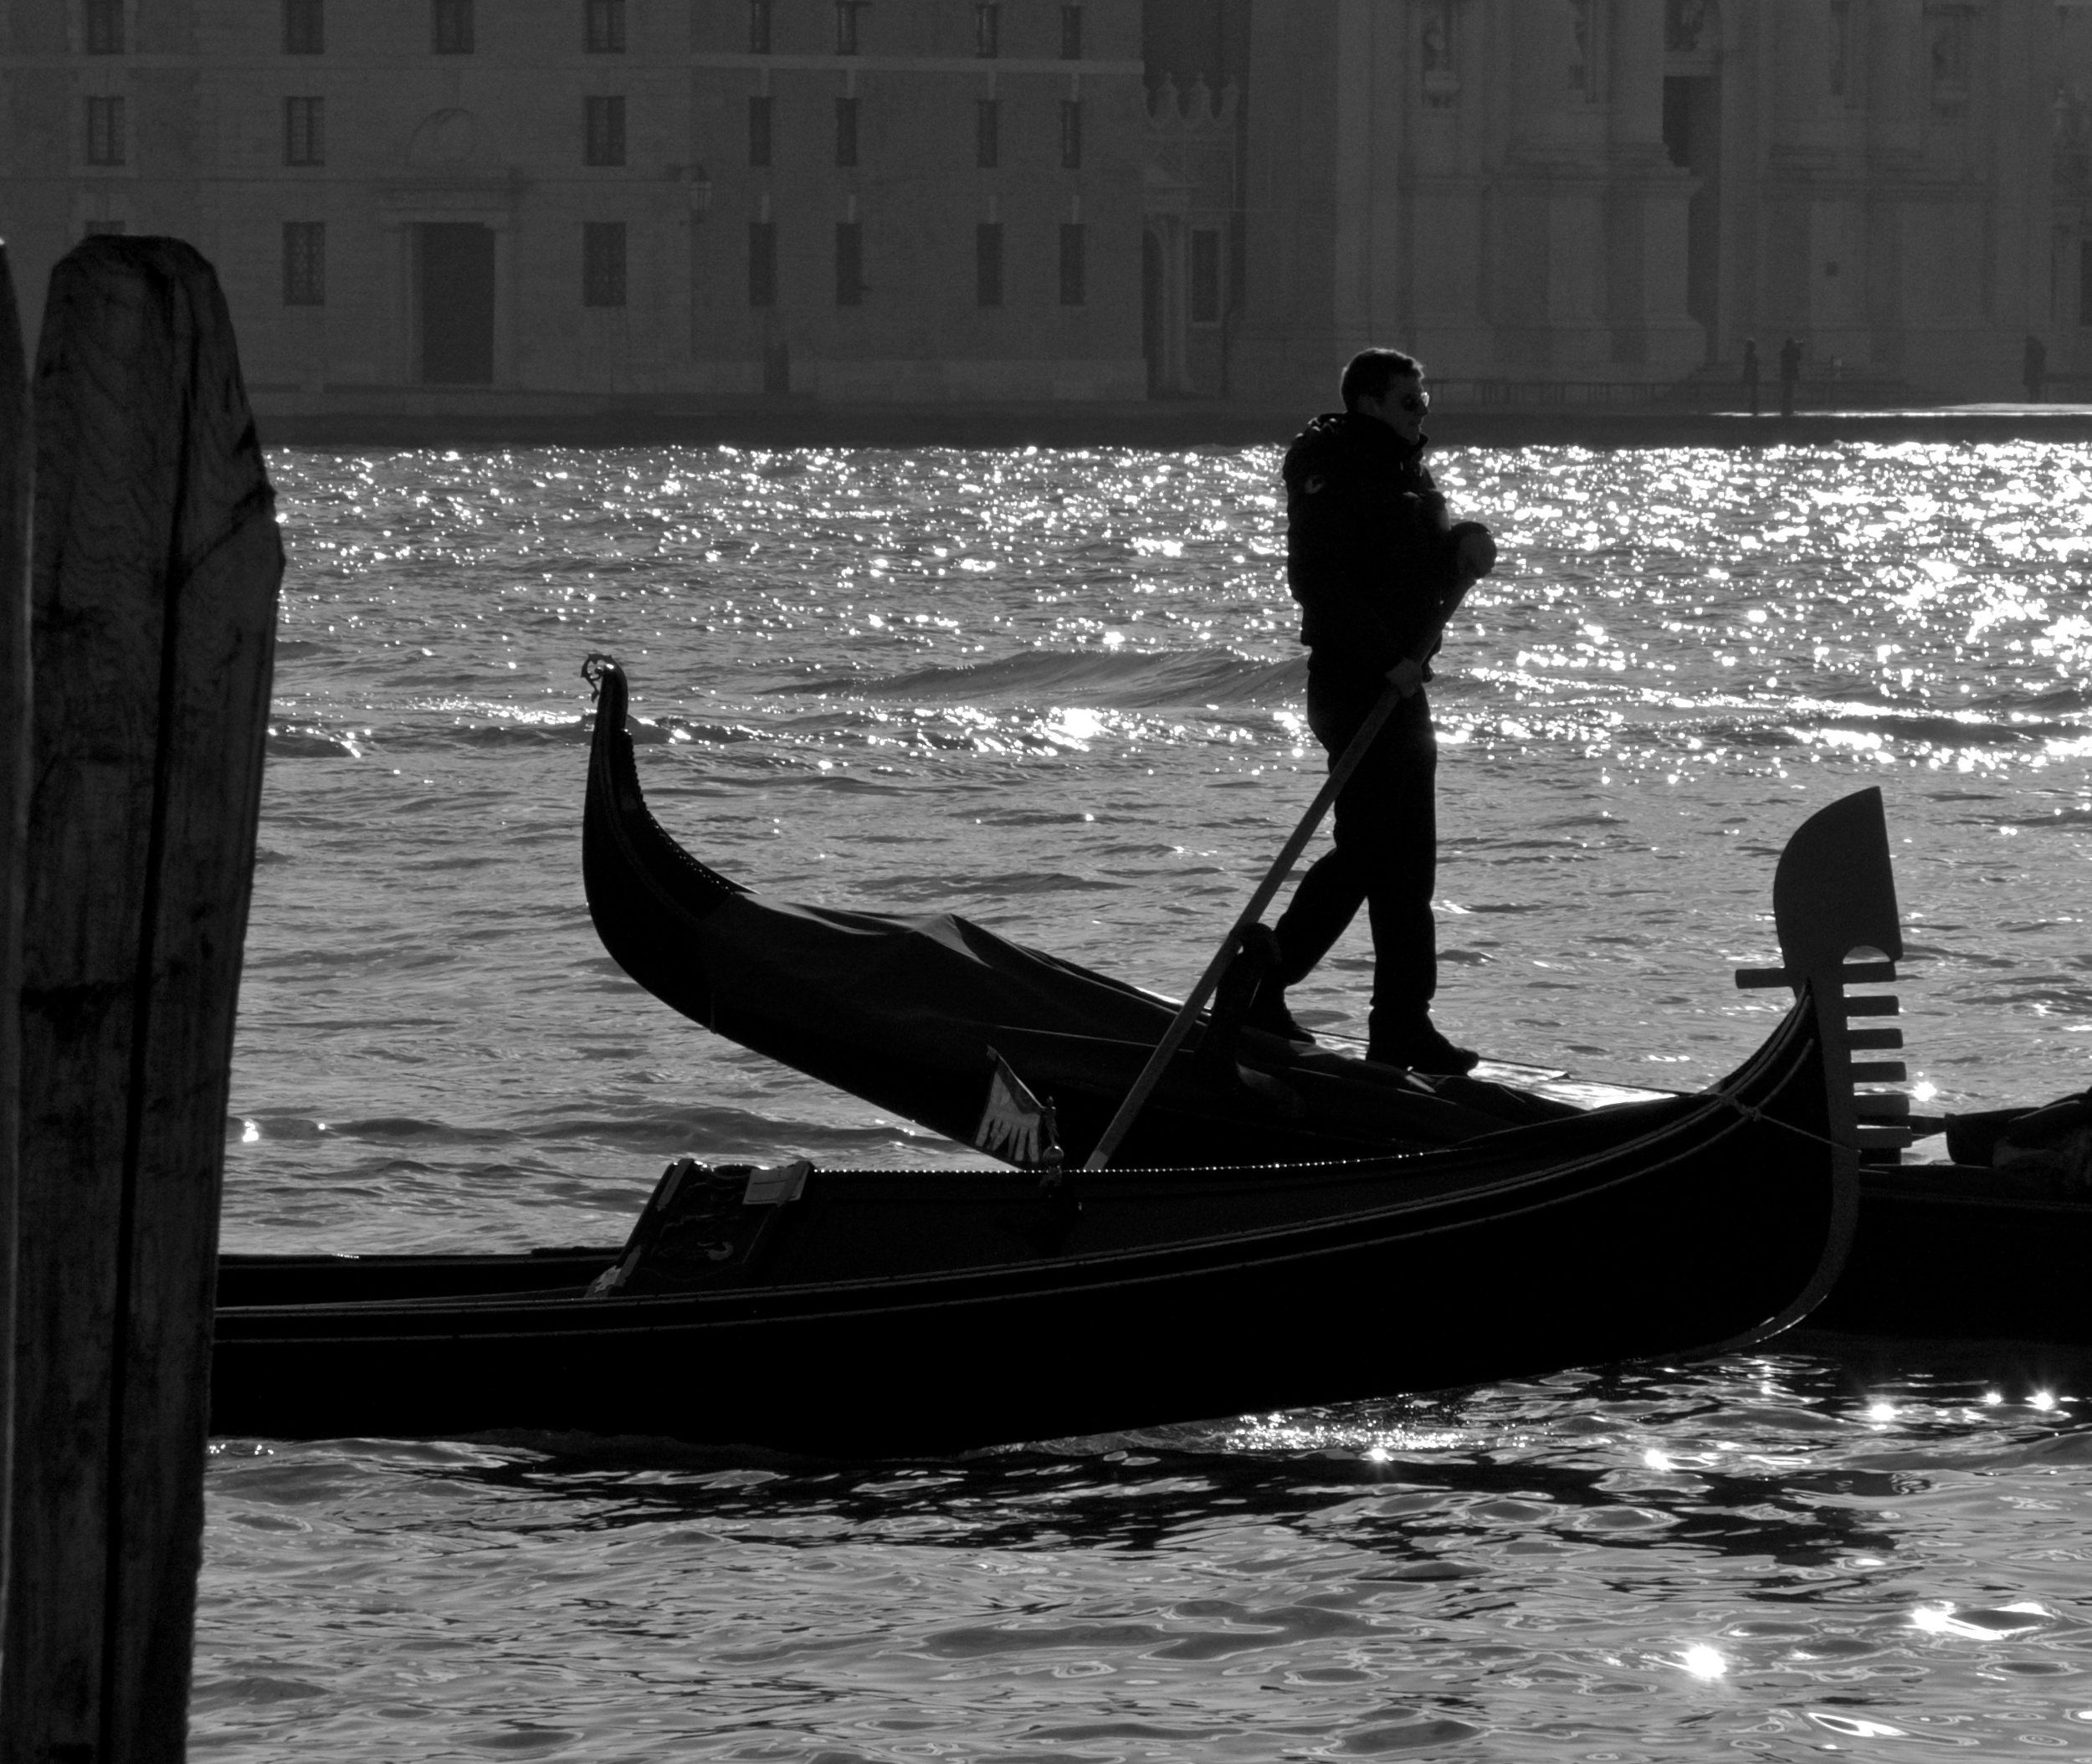 gondolier  91906 - Version 2.jpg